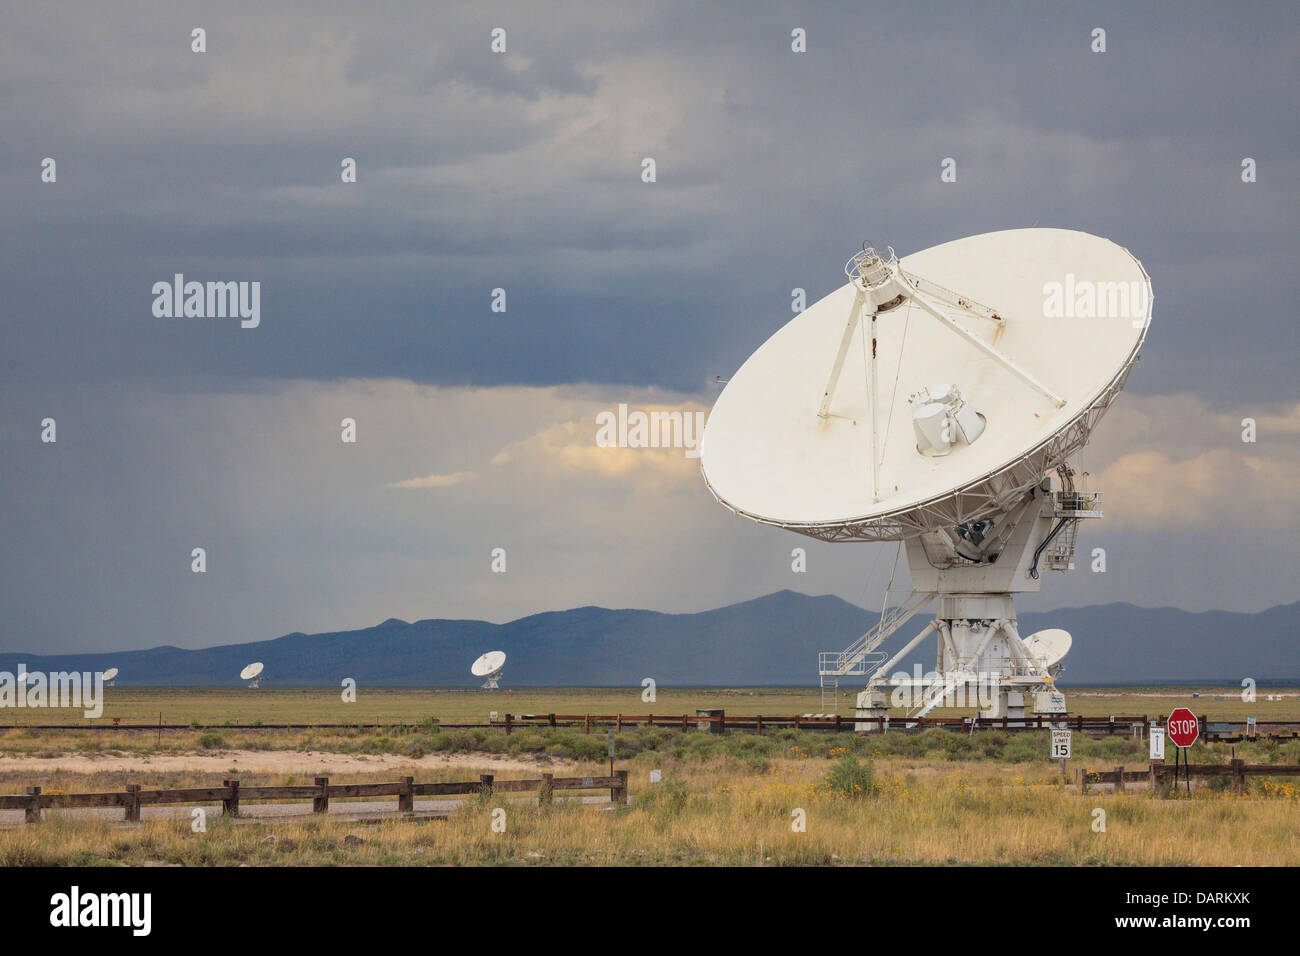 USA, New Mexico, Socorro, Very Large Array International Radio Telescope - Stock Image